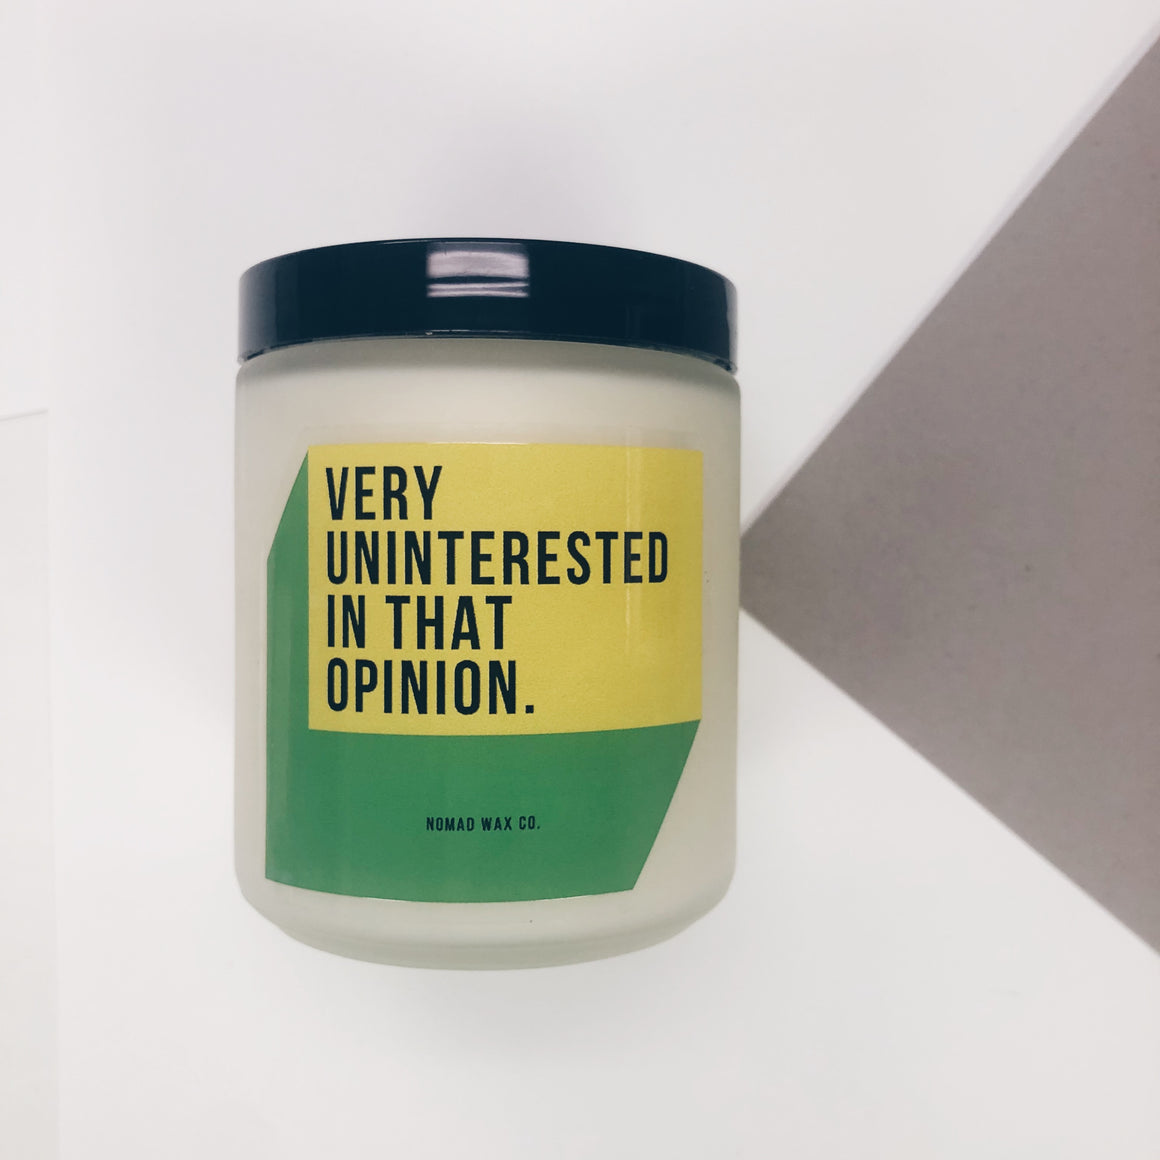 Very Uninterested in That Opinion - Schitt's Creek - Vegan Scented Soy Candle